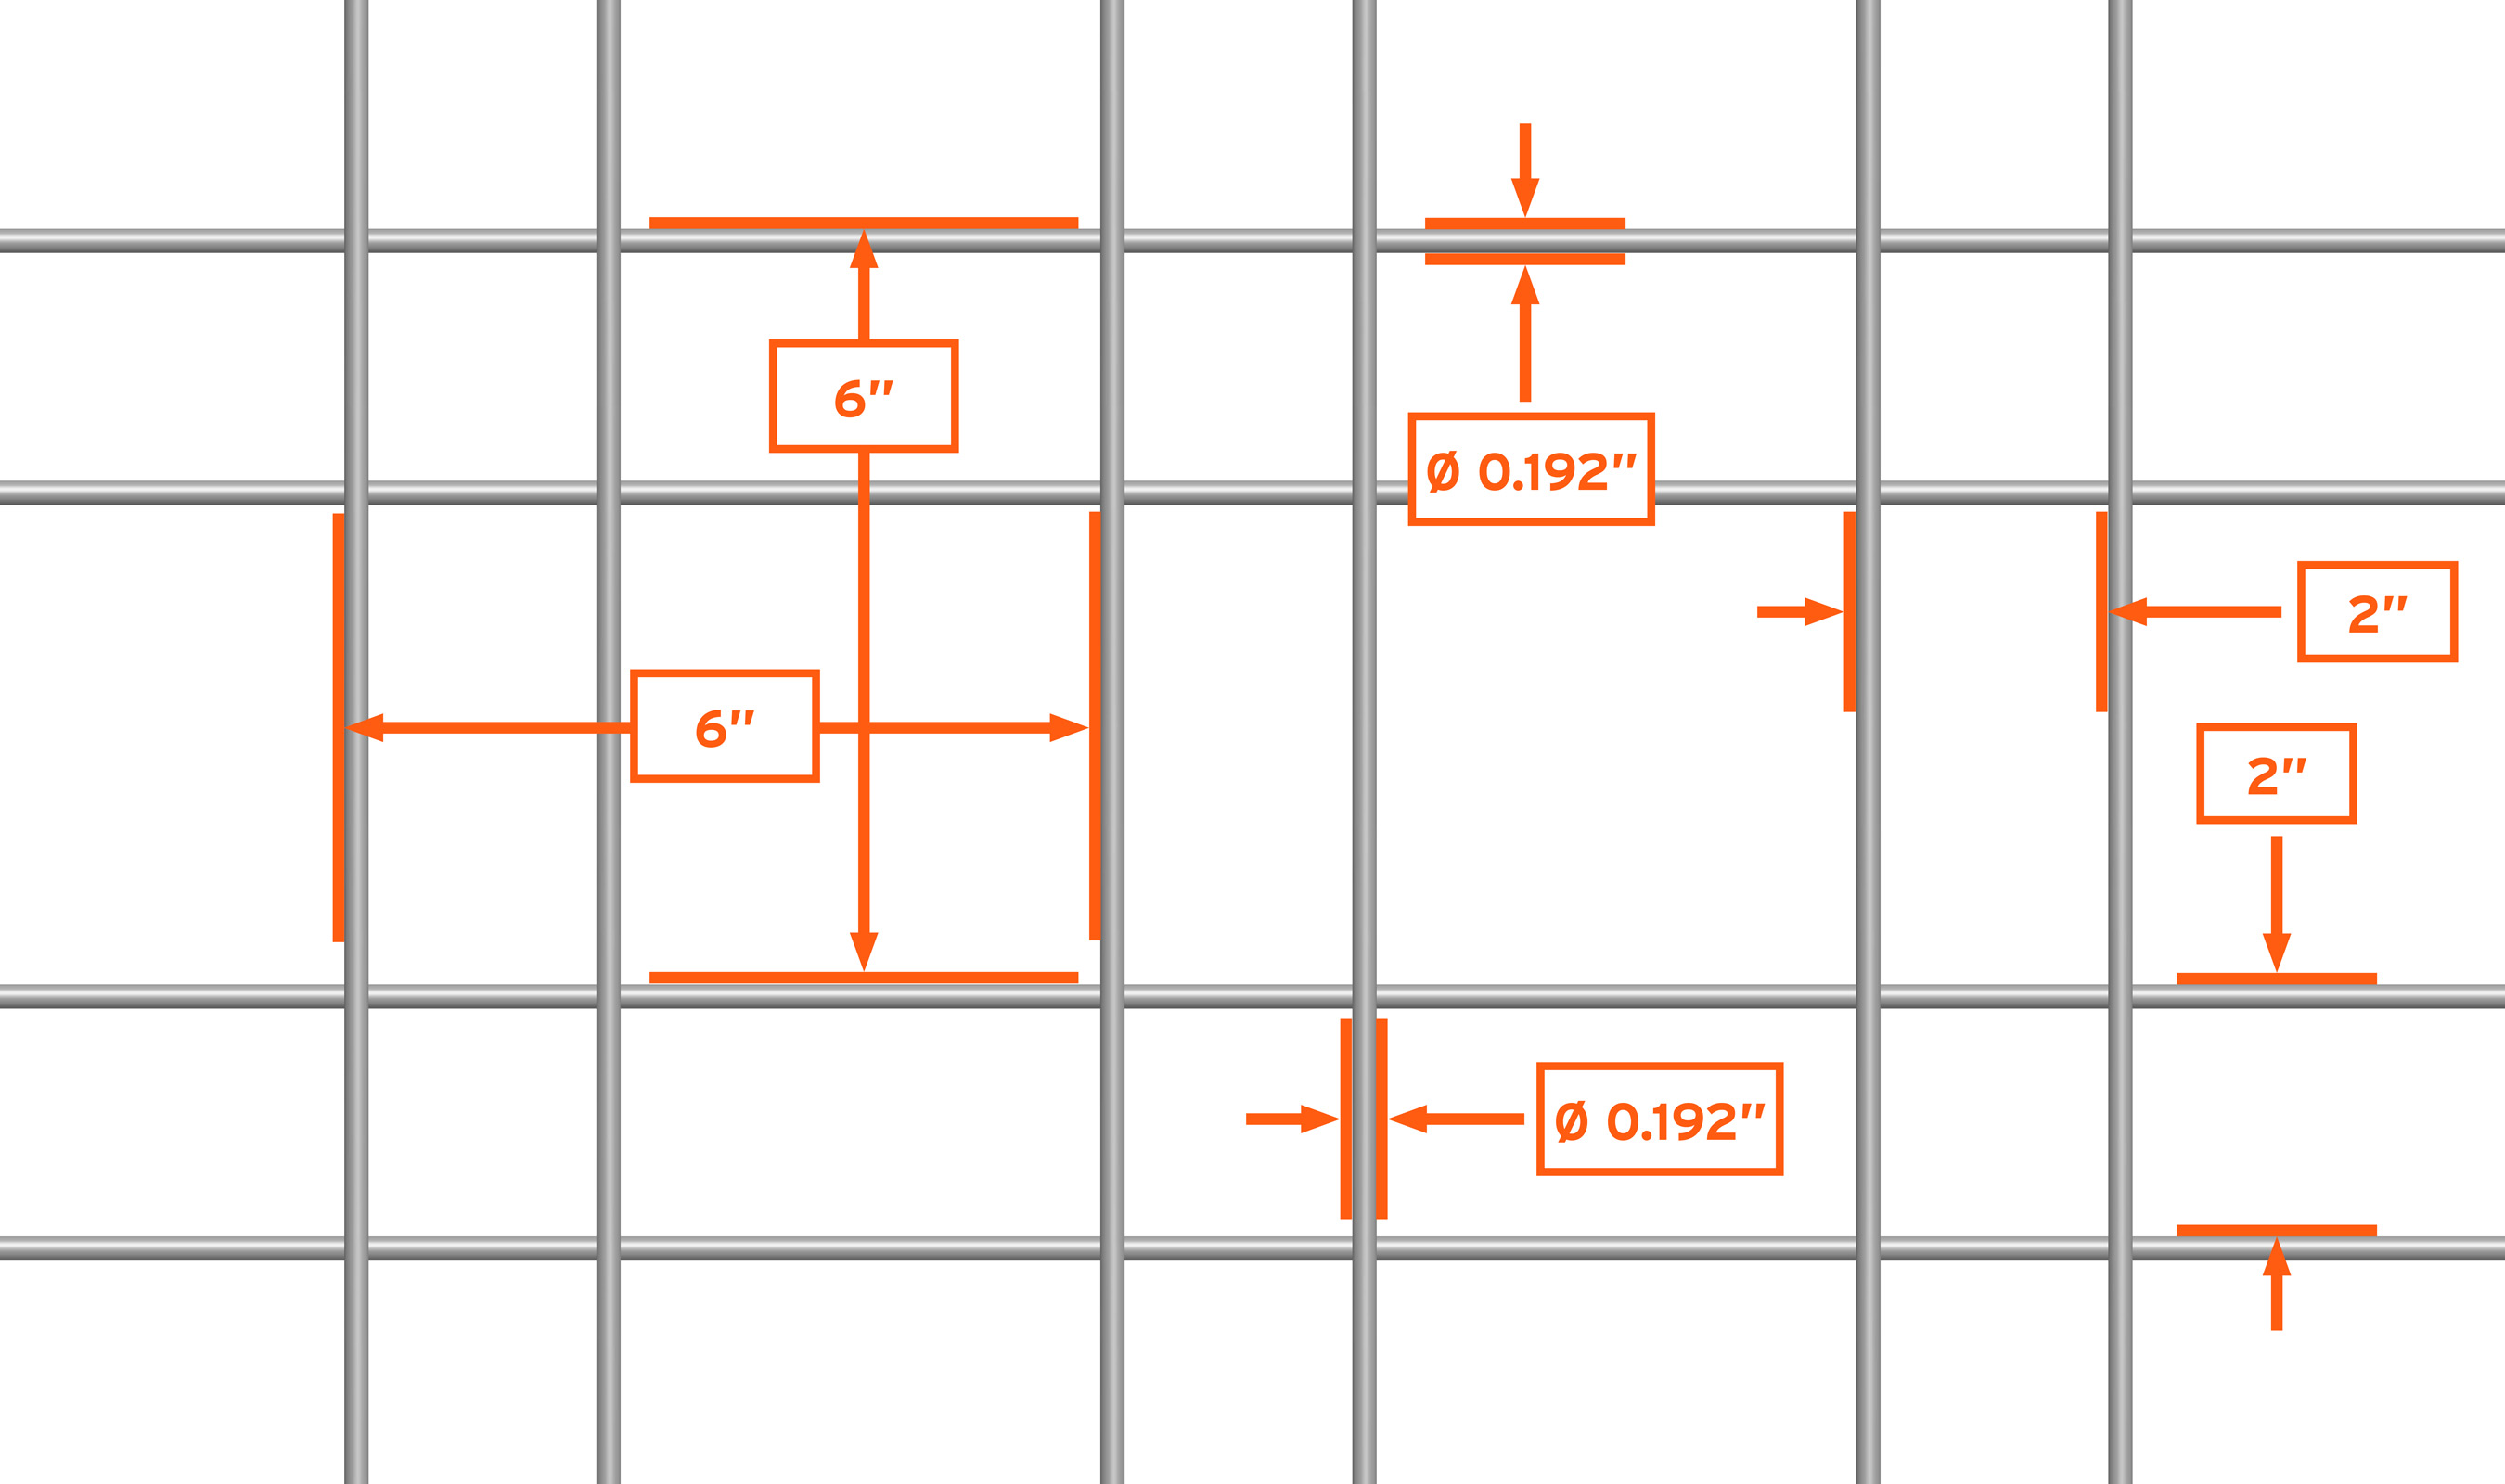 "The WD-278 is a square repeating ornamental welded wire mesh pattern consisting of 2 wires every 6 inches. A Standard 48""x96"" panel consists of 8 patterns by 16 patterns. A standard 60""x120"" panel consists of 10 patterns by 20 patterns."